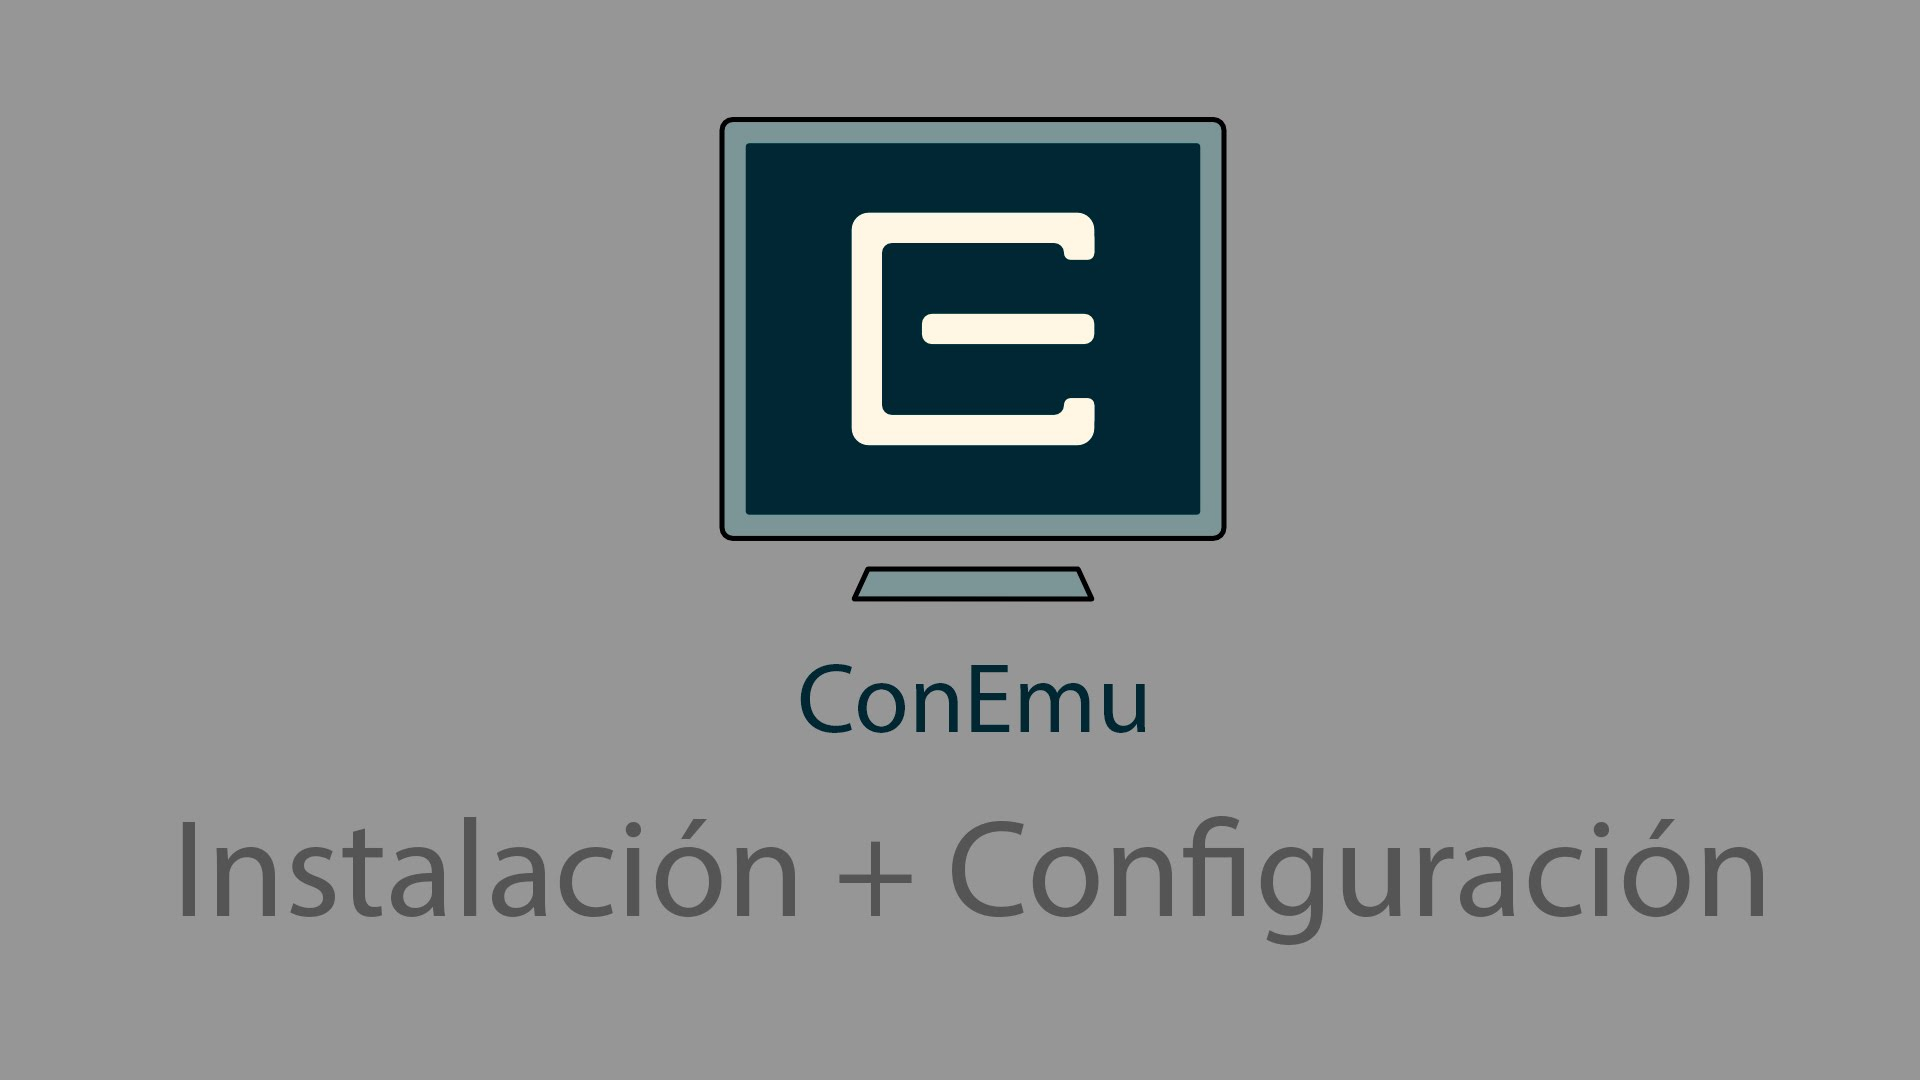 ConEmu Free download